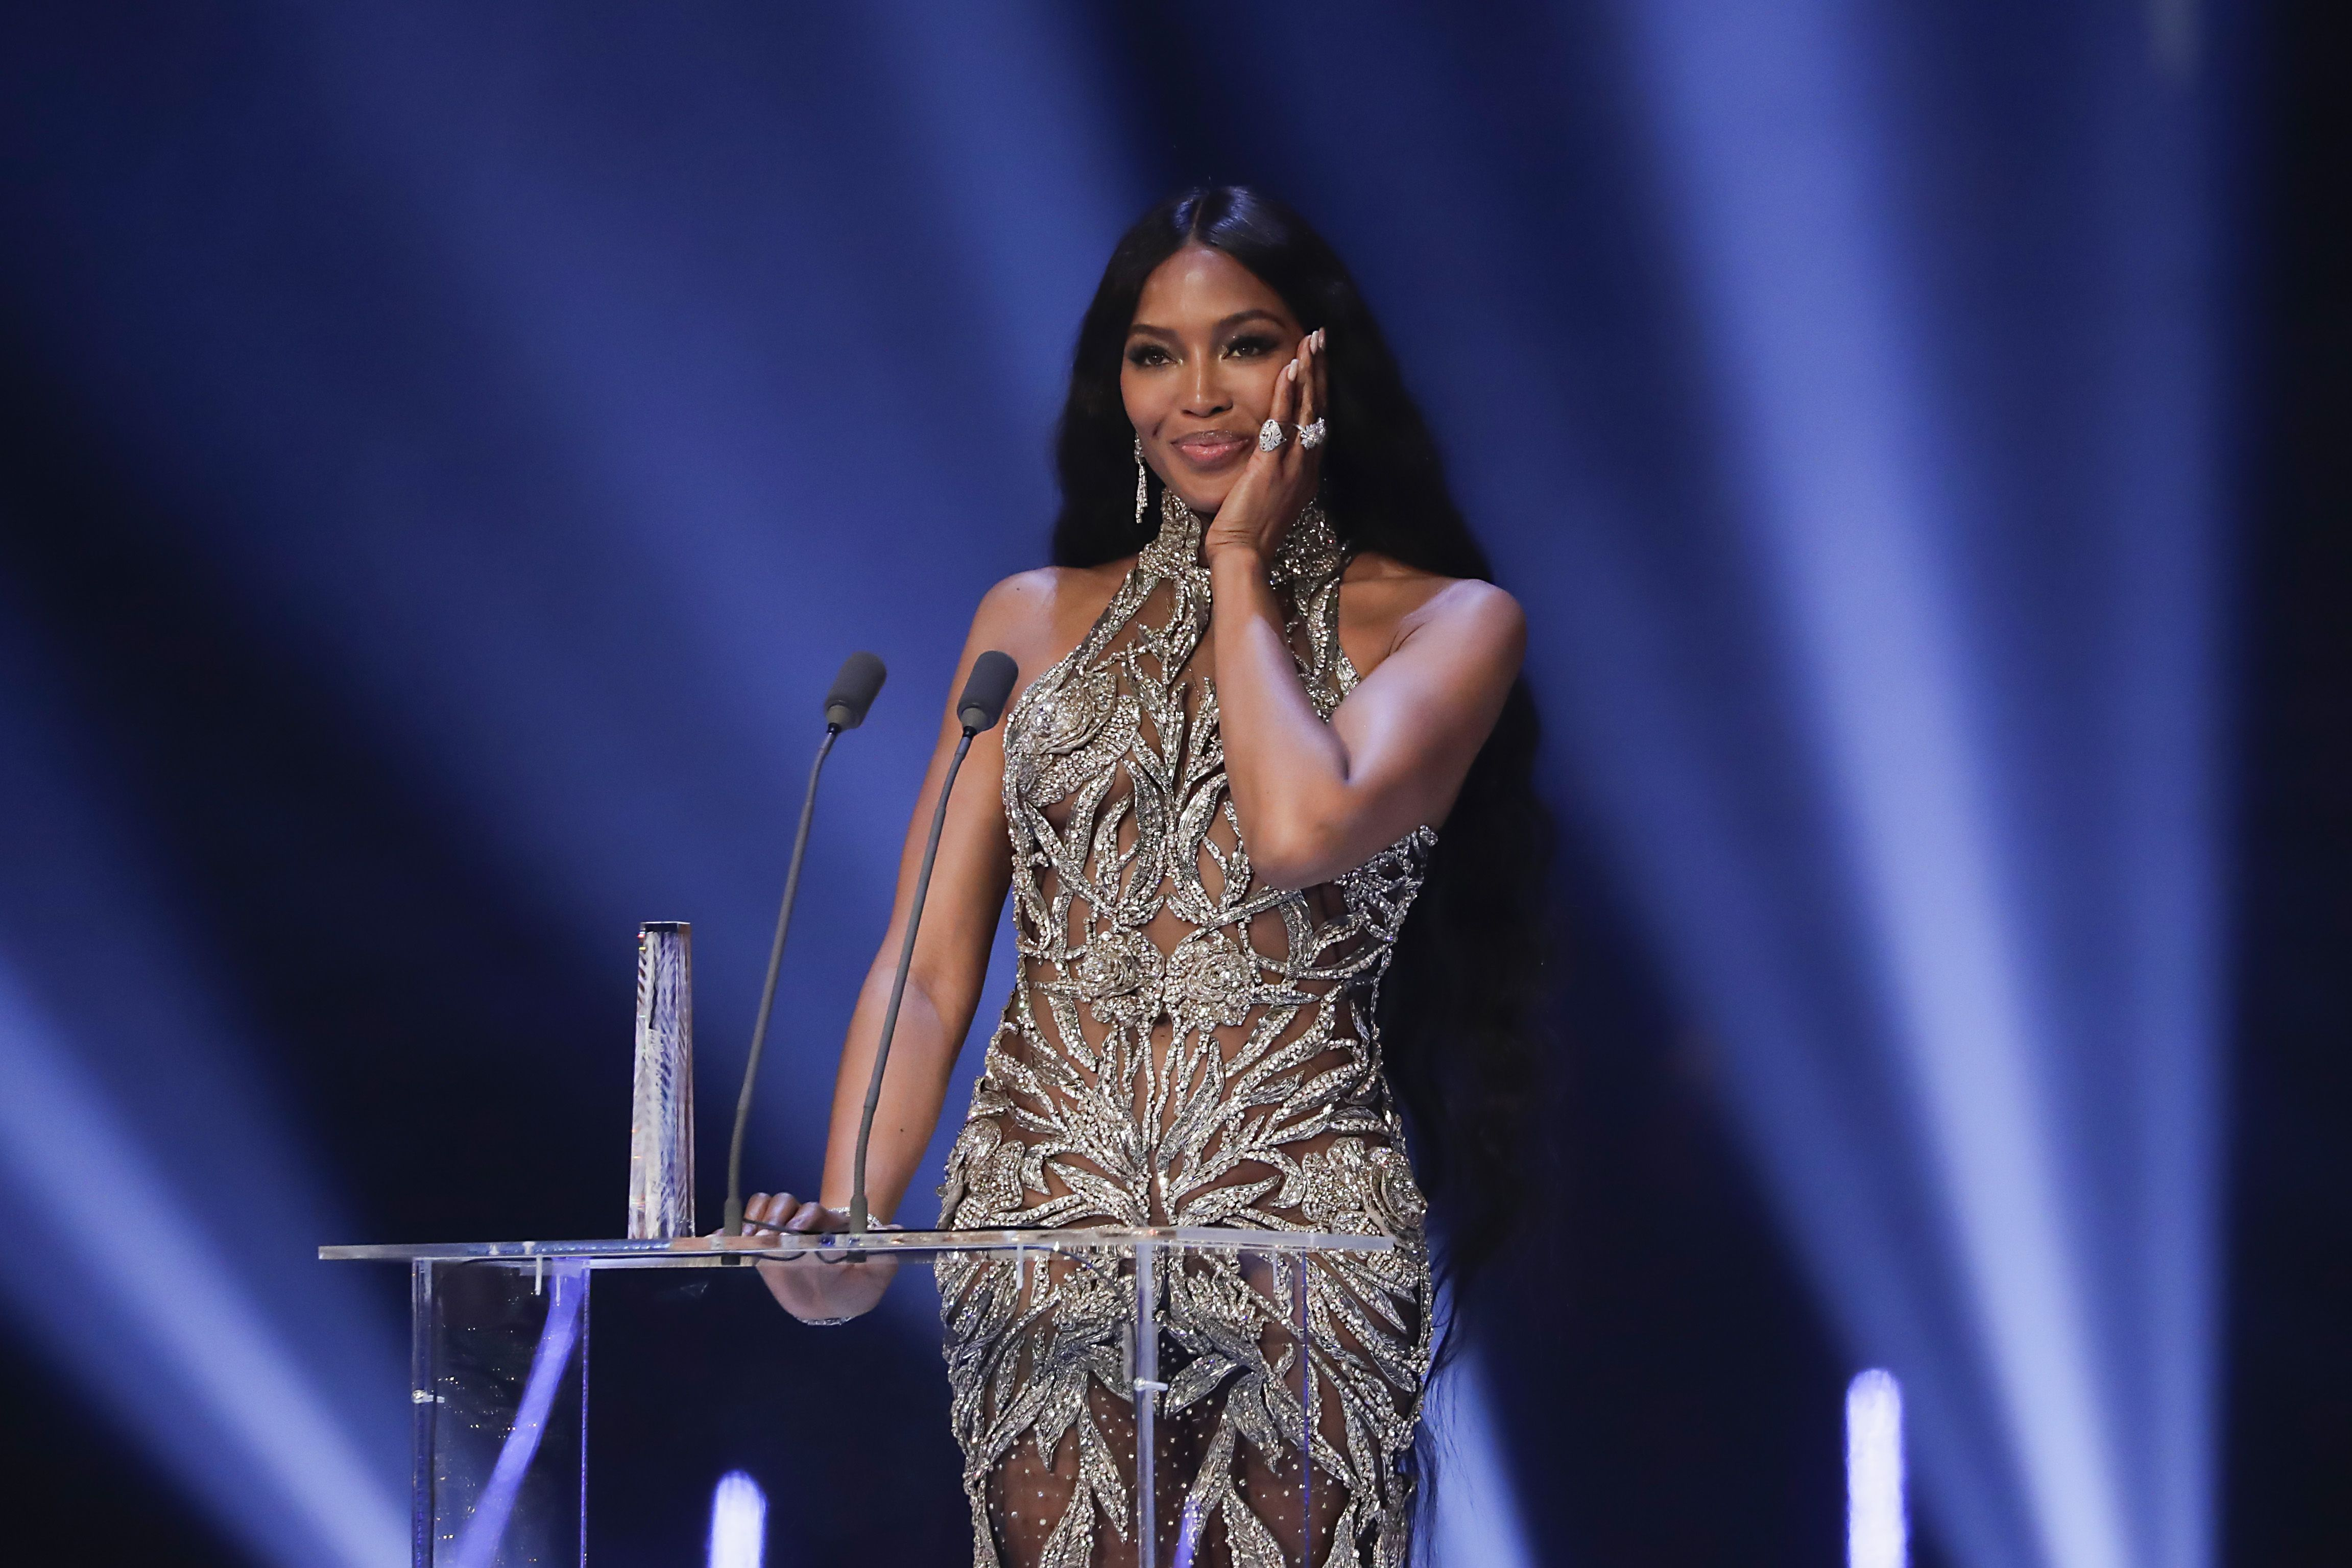 Naomi Campbell breaks down as she wins Fashion Icon prize